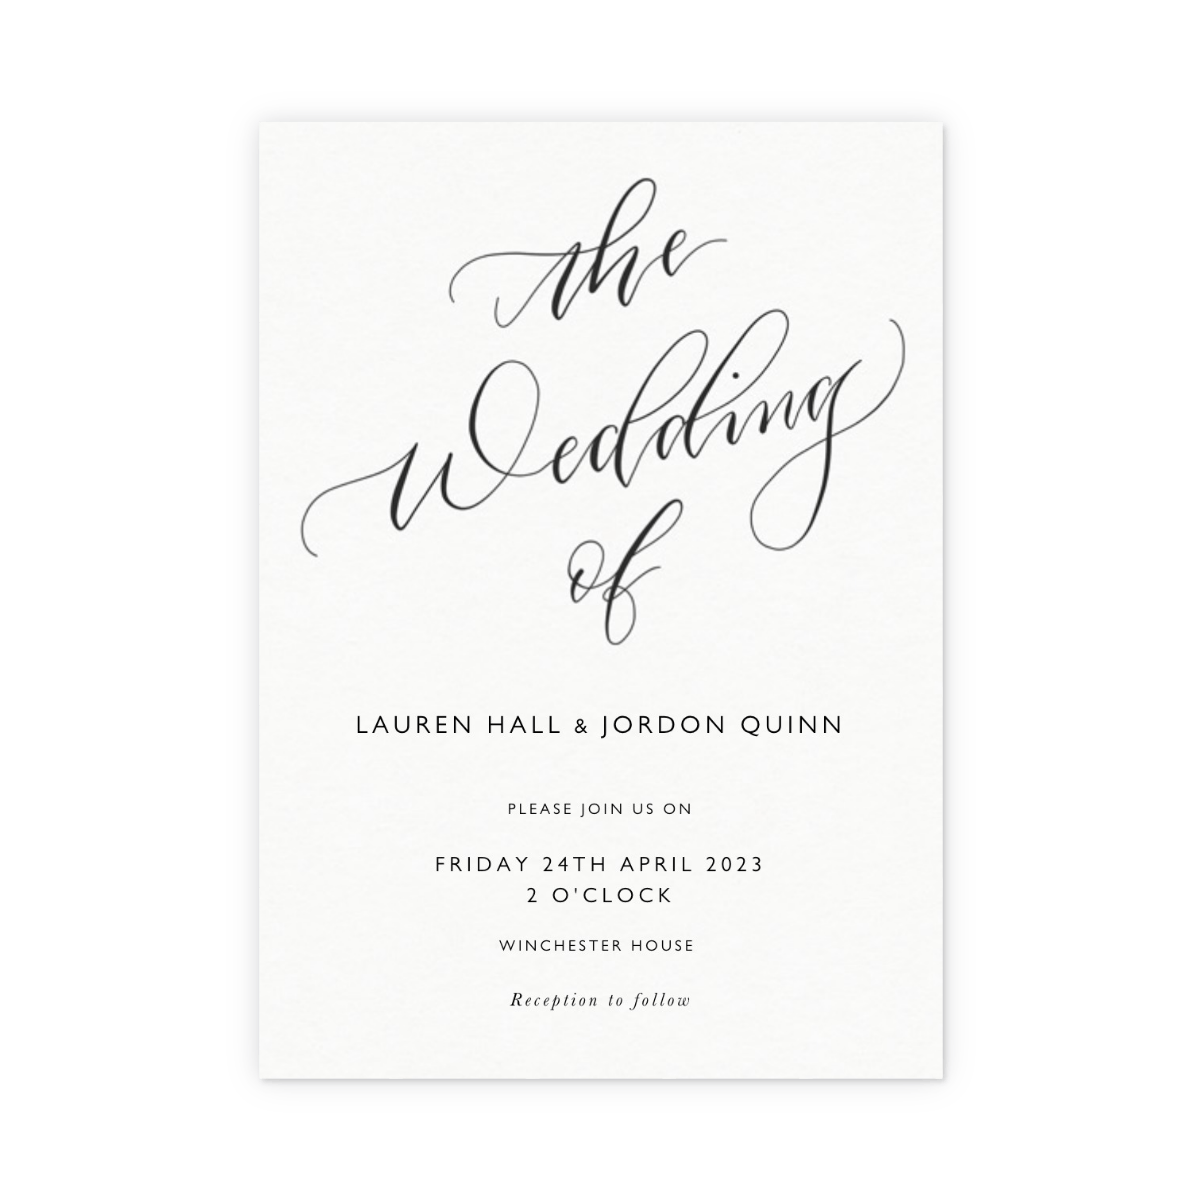 Https%3a%2f%2fwww.papier.com%2fproduct image%2f8874%2f4%2fthe wedding of calligraphy 2223 front 1532424744.png?ixlib=rb 1.1